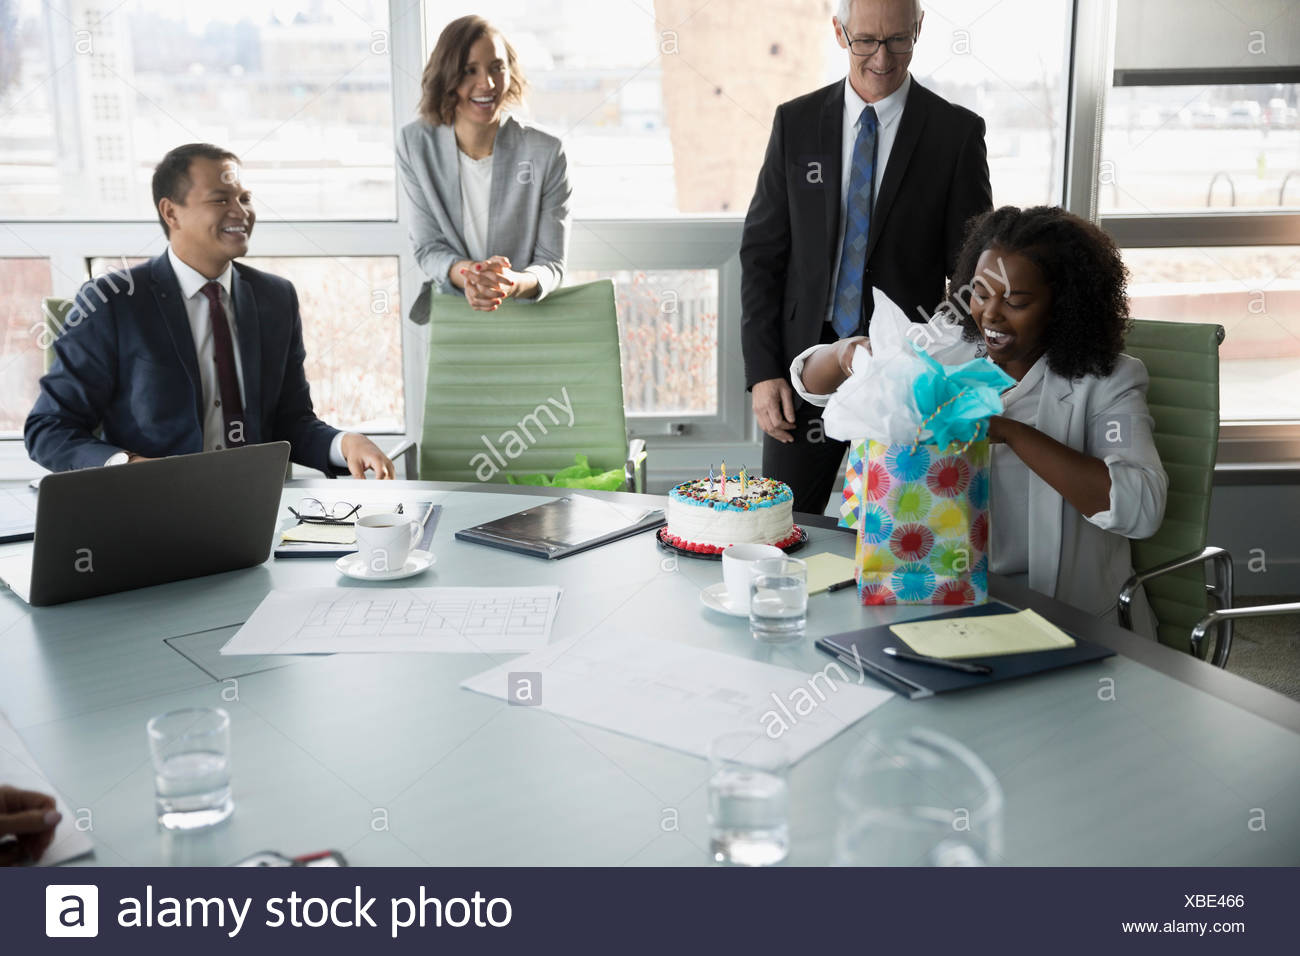 Businesswoman Opening Birthday Gifts From Colleagues In Conference Room